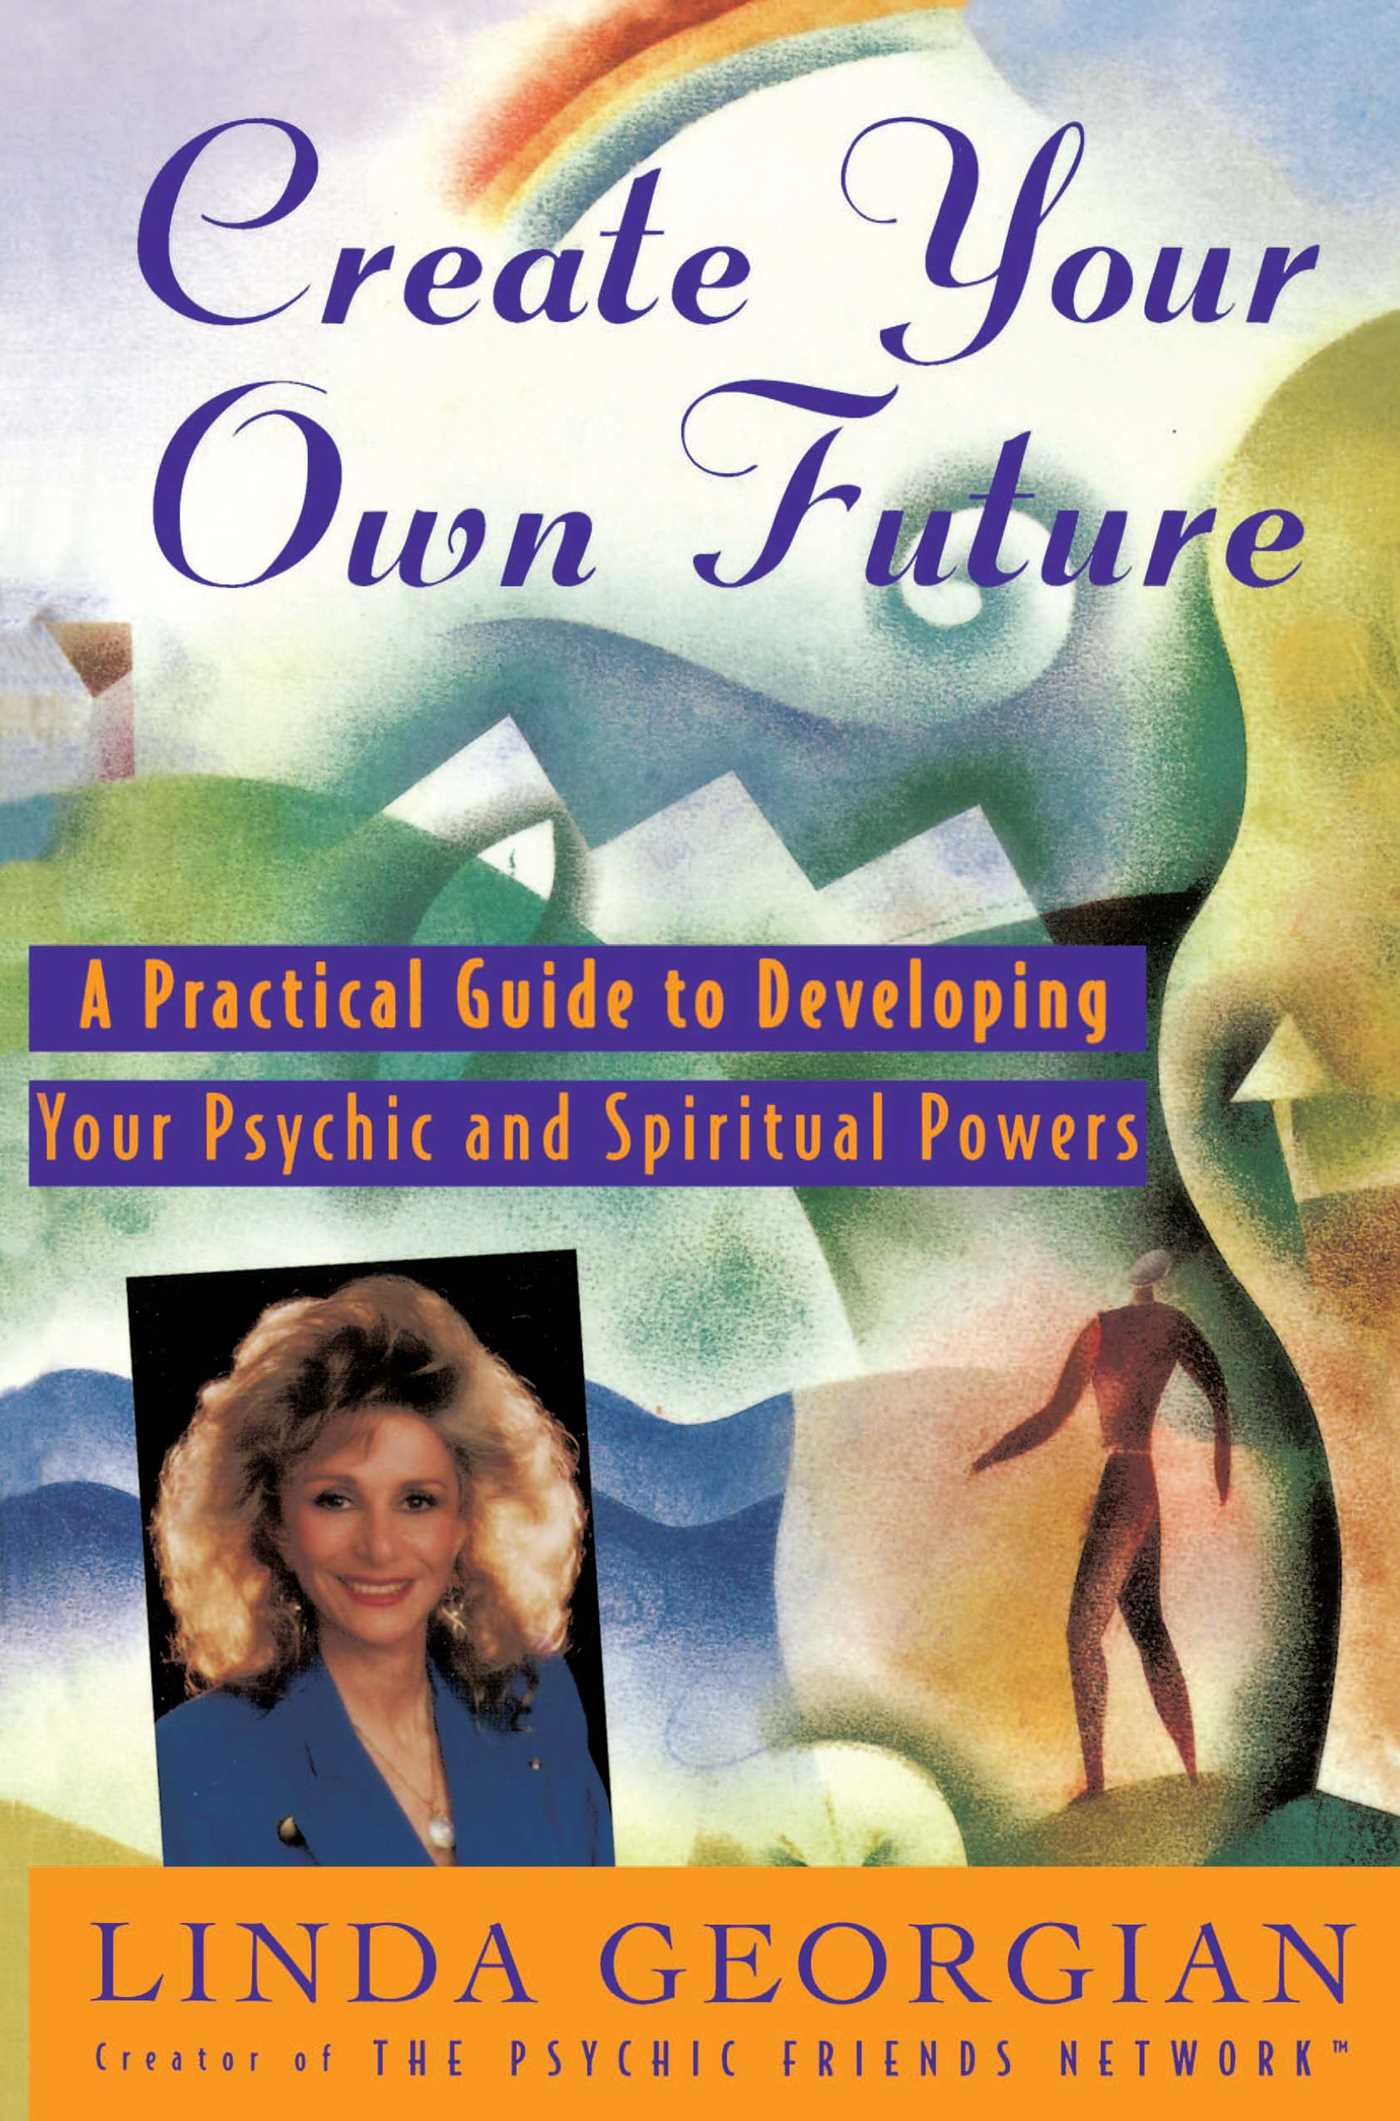 Create your own future 9780684810898 hr